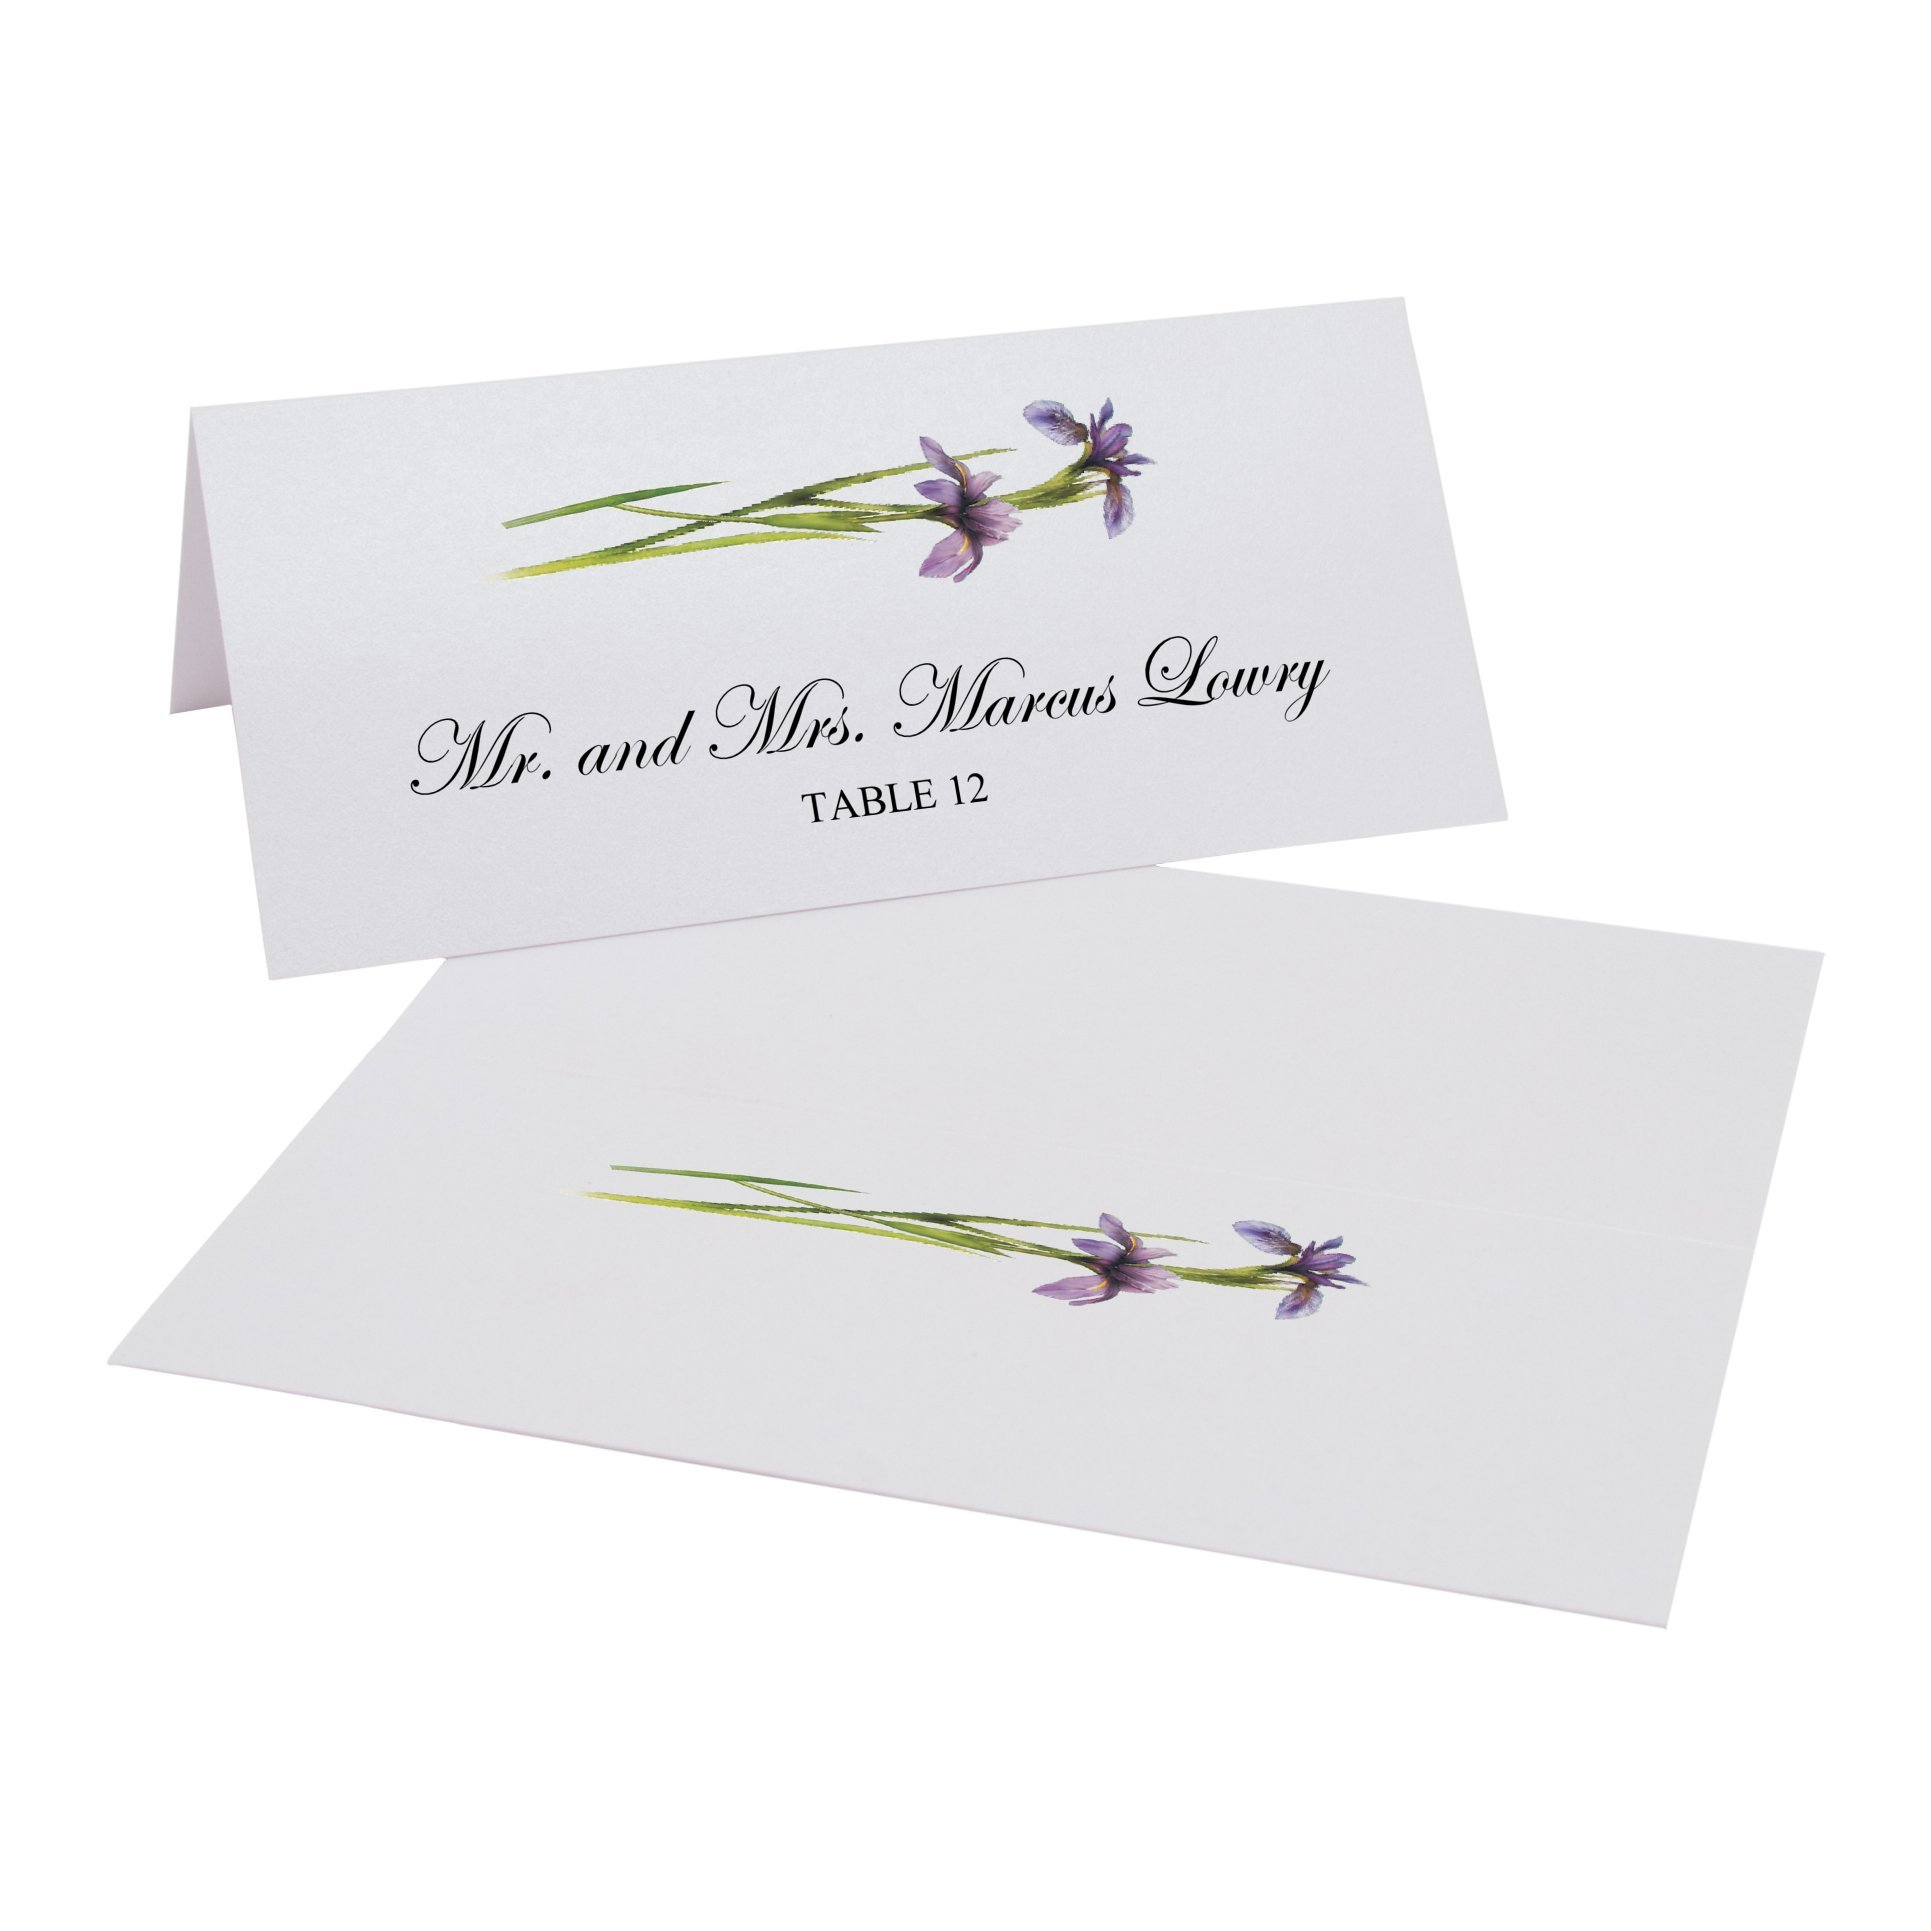 Wispy Purple Iris Flowers Easy Print Place Cards, Pearl White, Set of 450 (113 Sheets) by Documents and Designs